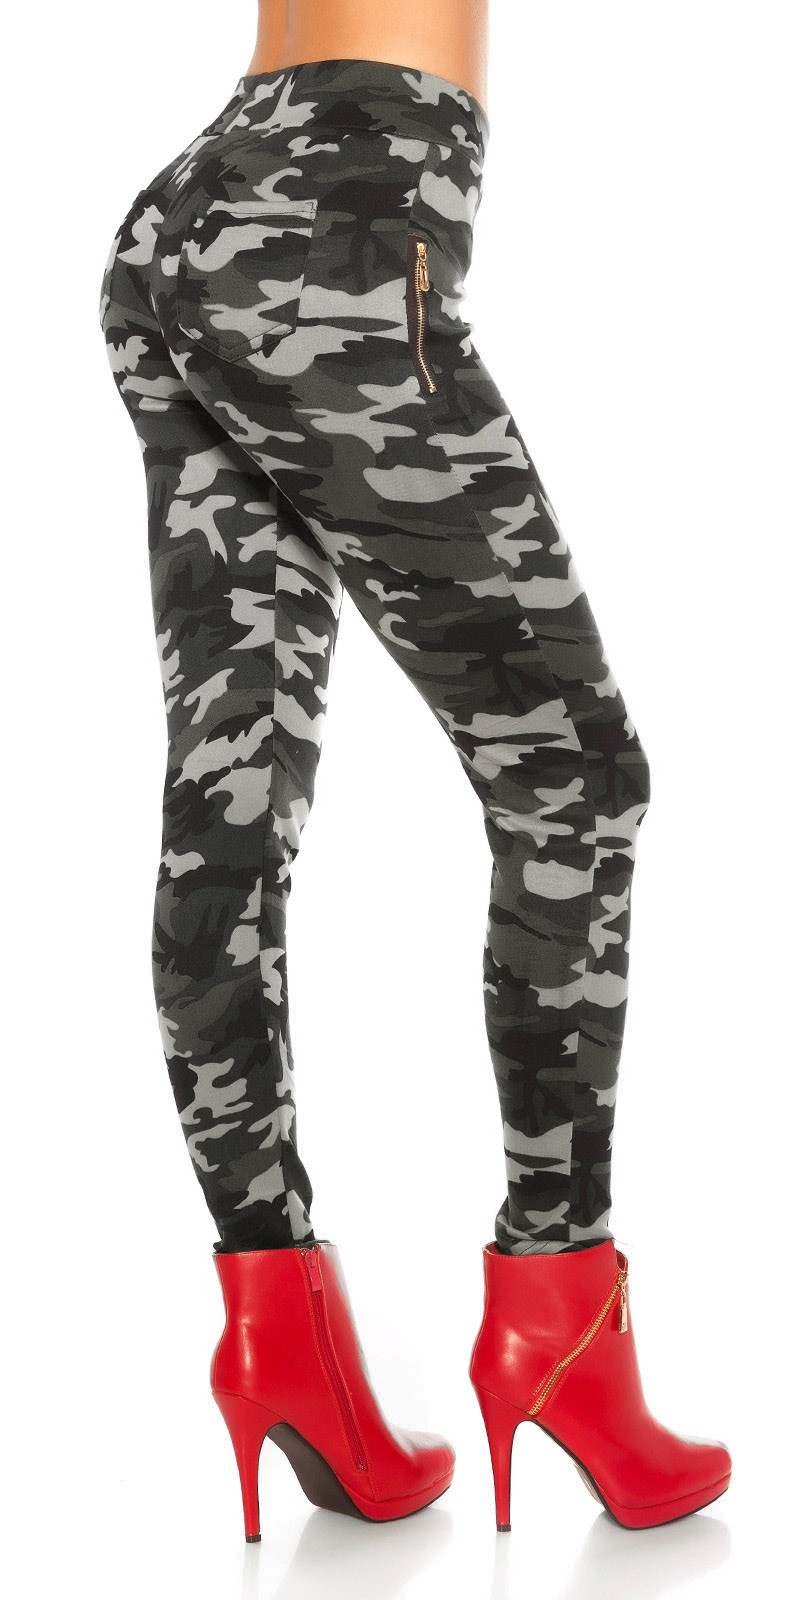 Sexy Leggings in Camouflage Grey